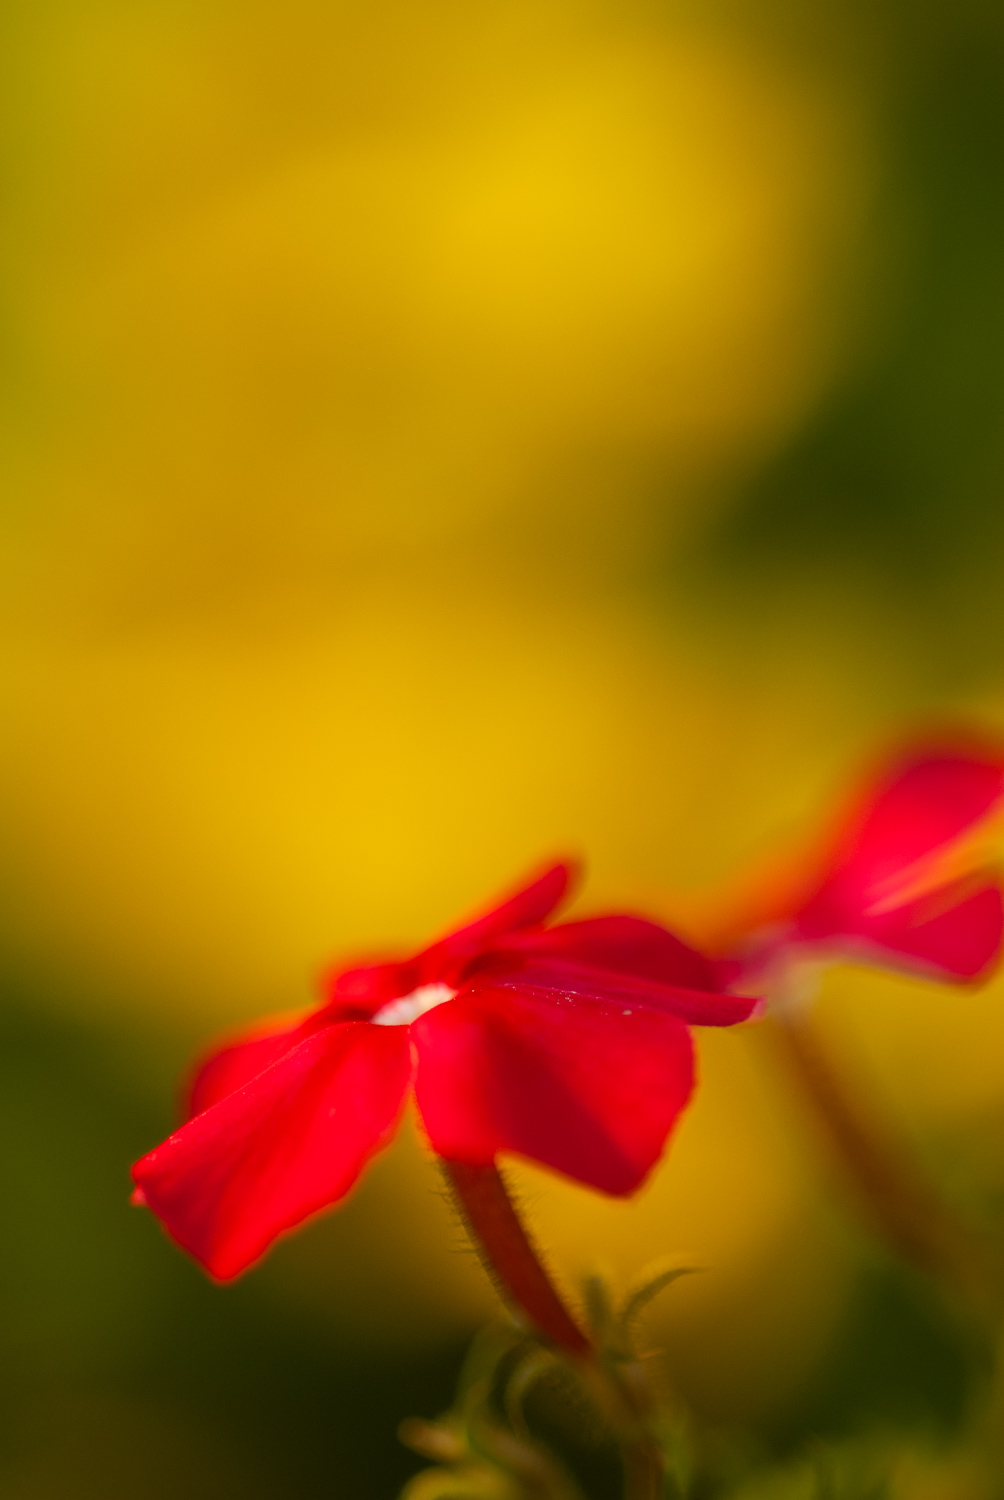 Macro of a red flower